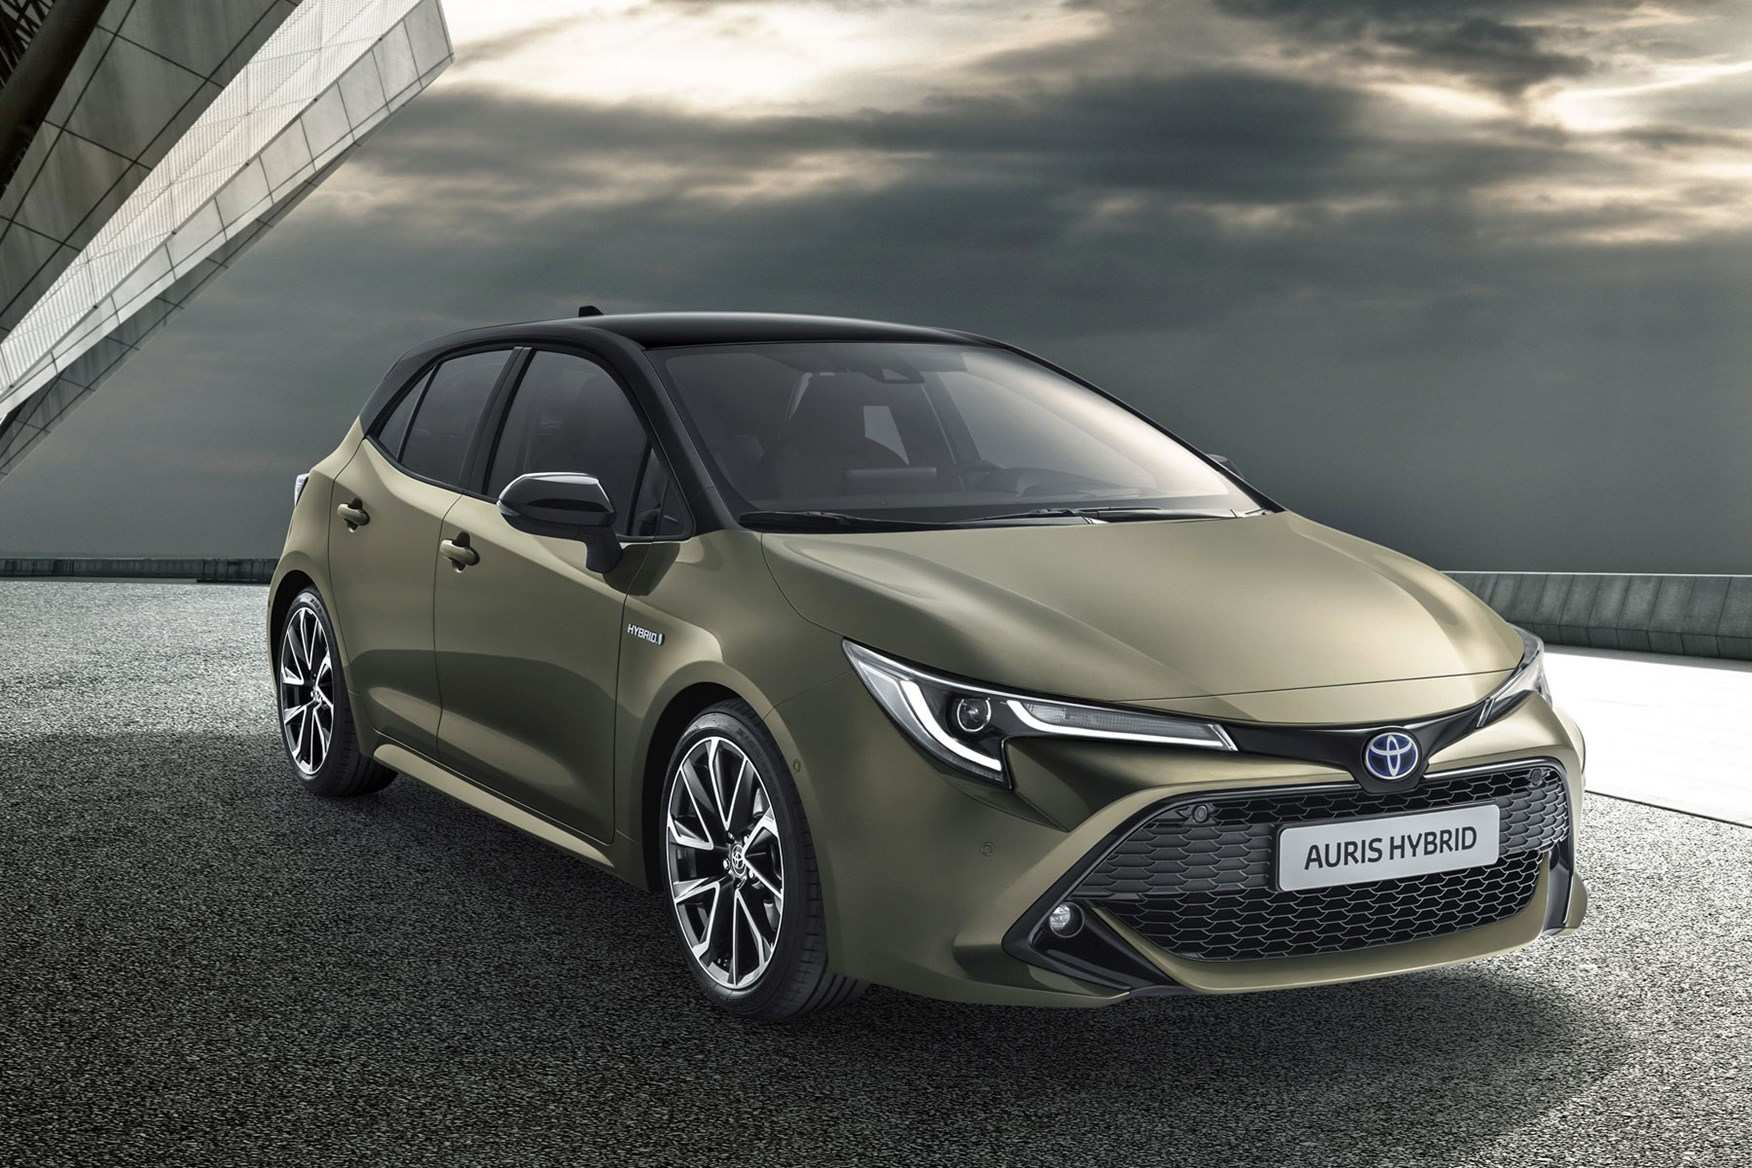 18 New Toyota Auris 2019 Release Date Performance and New Engine with Toyota Auris 2019 Release Date